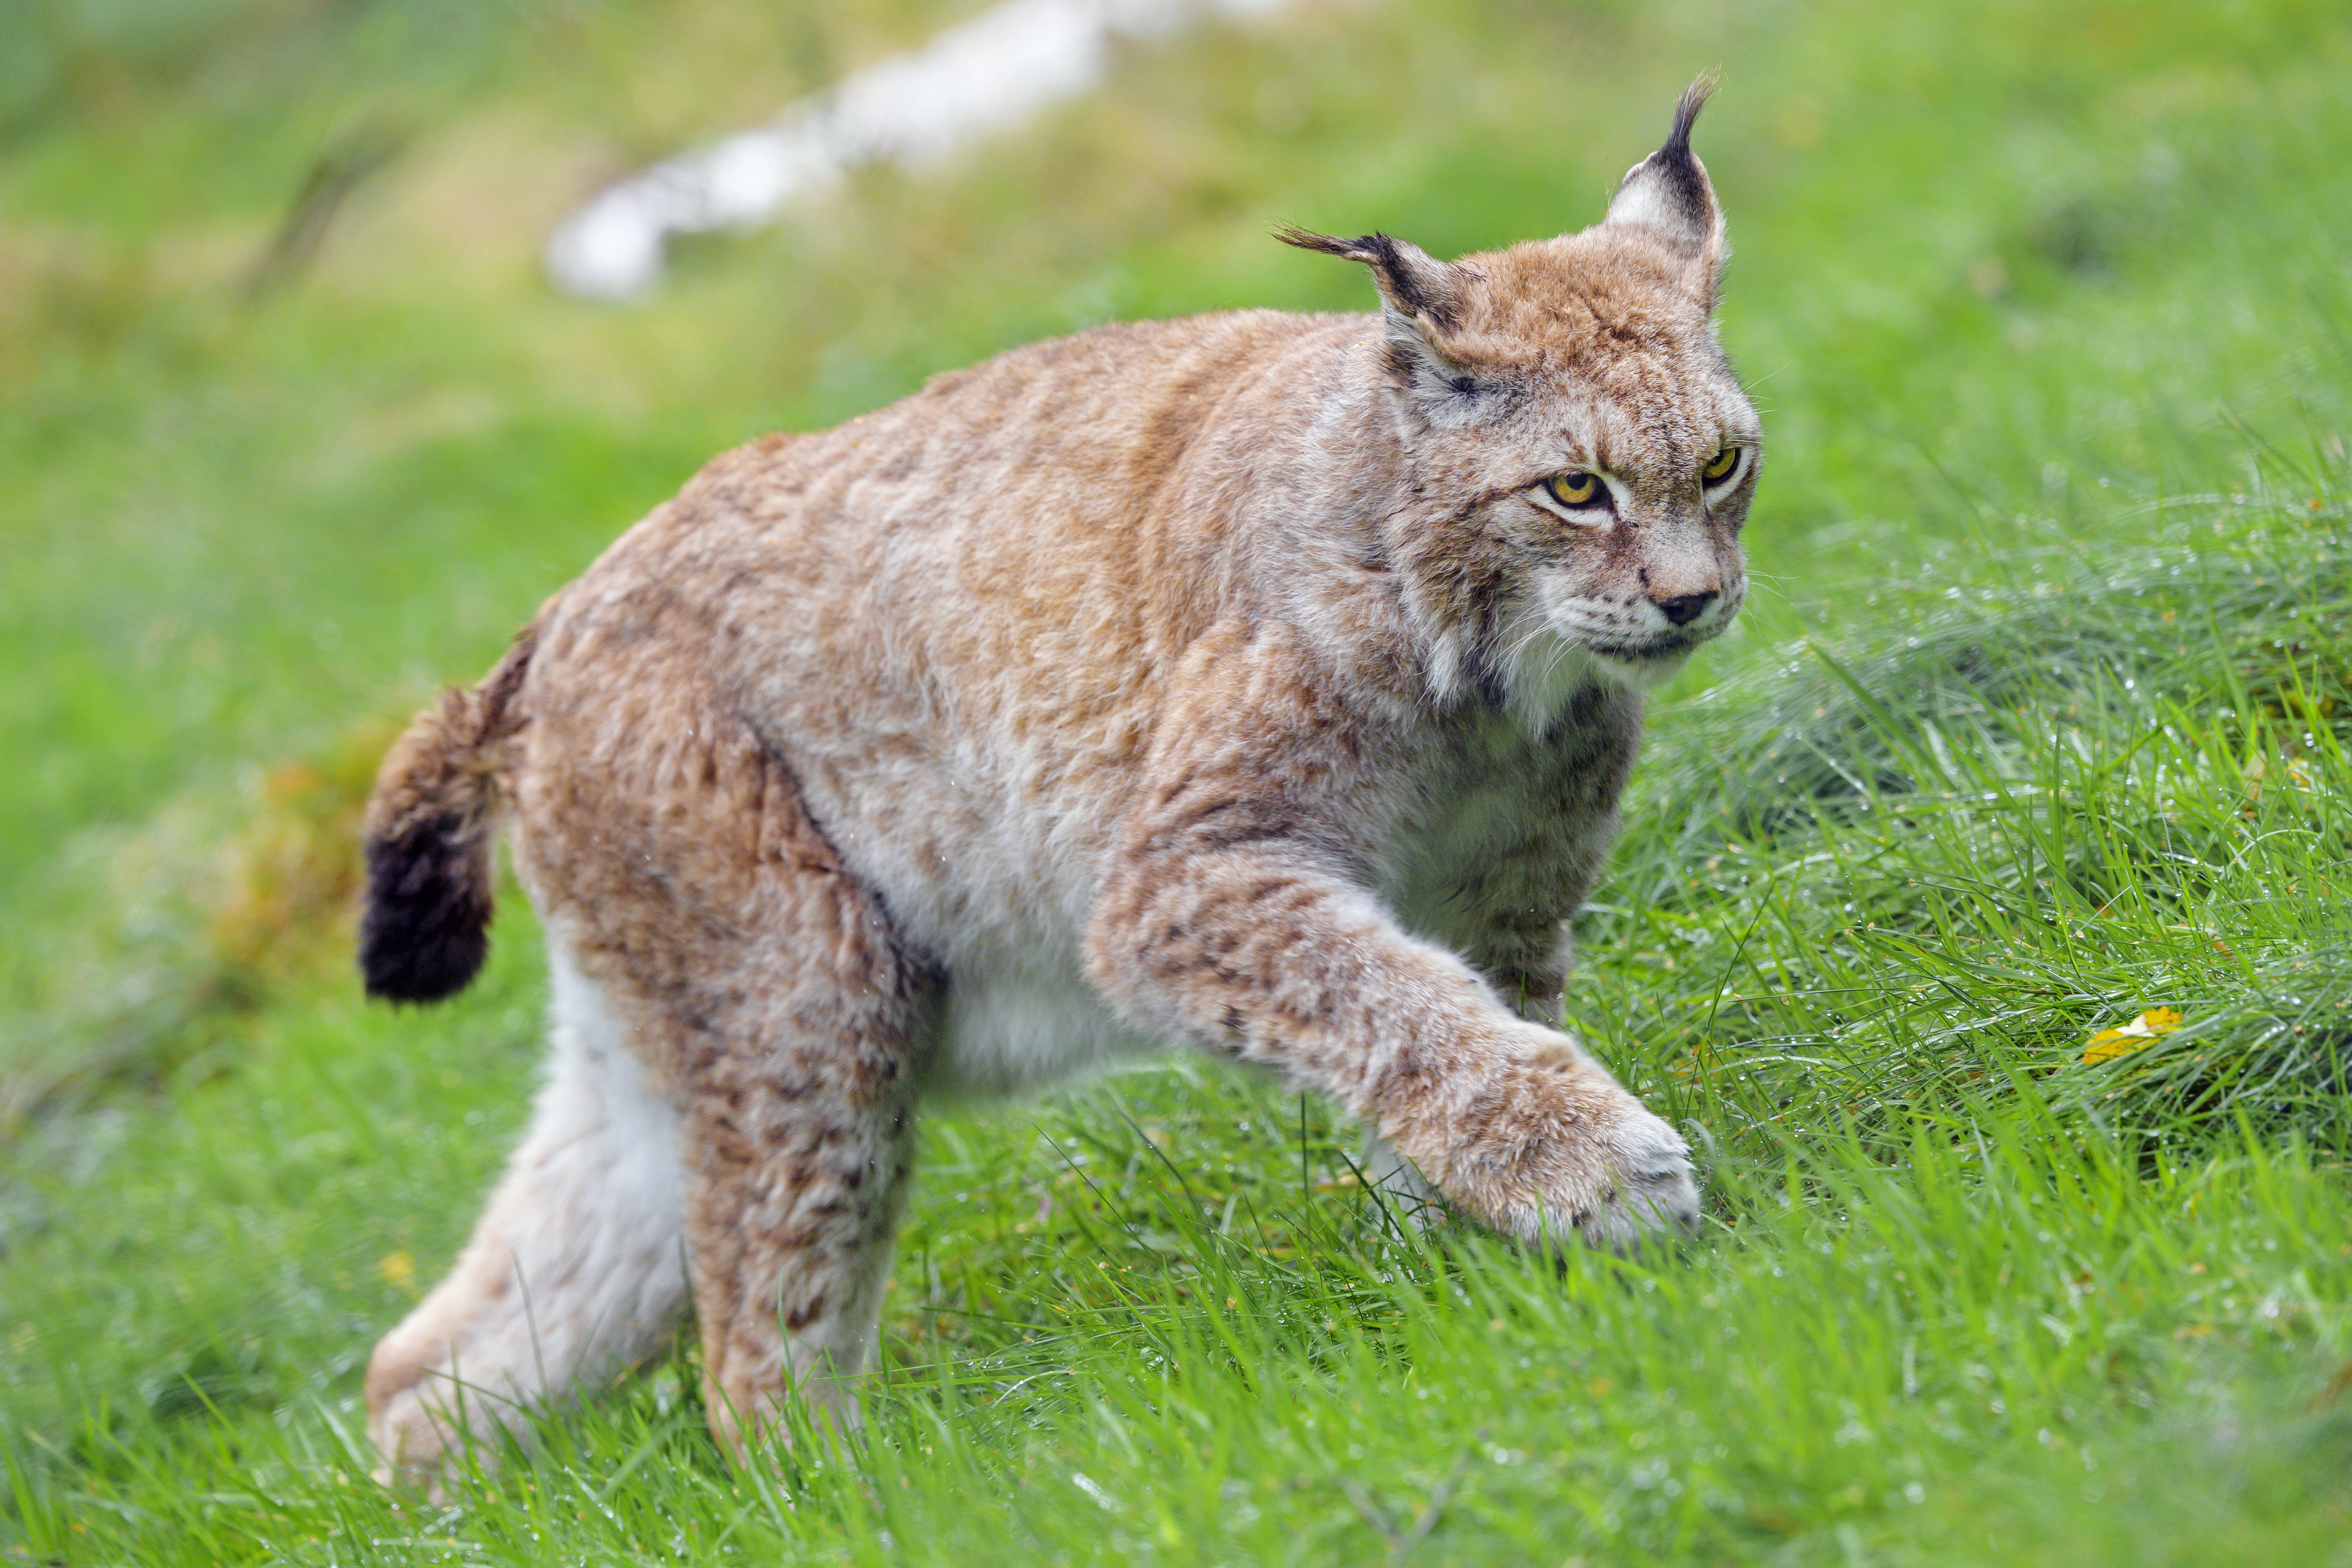 72778 download wallpaper Animals, Iris, Big Cat, Animal, Grass, Wildlife screensavers and pictures for free